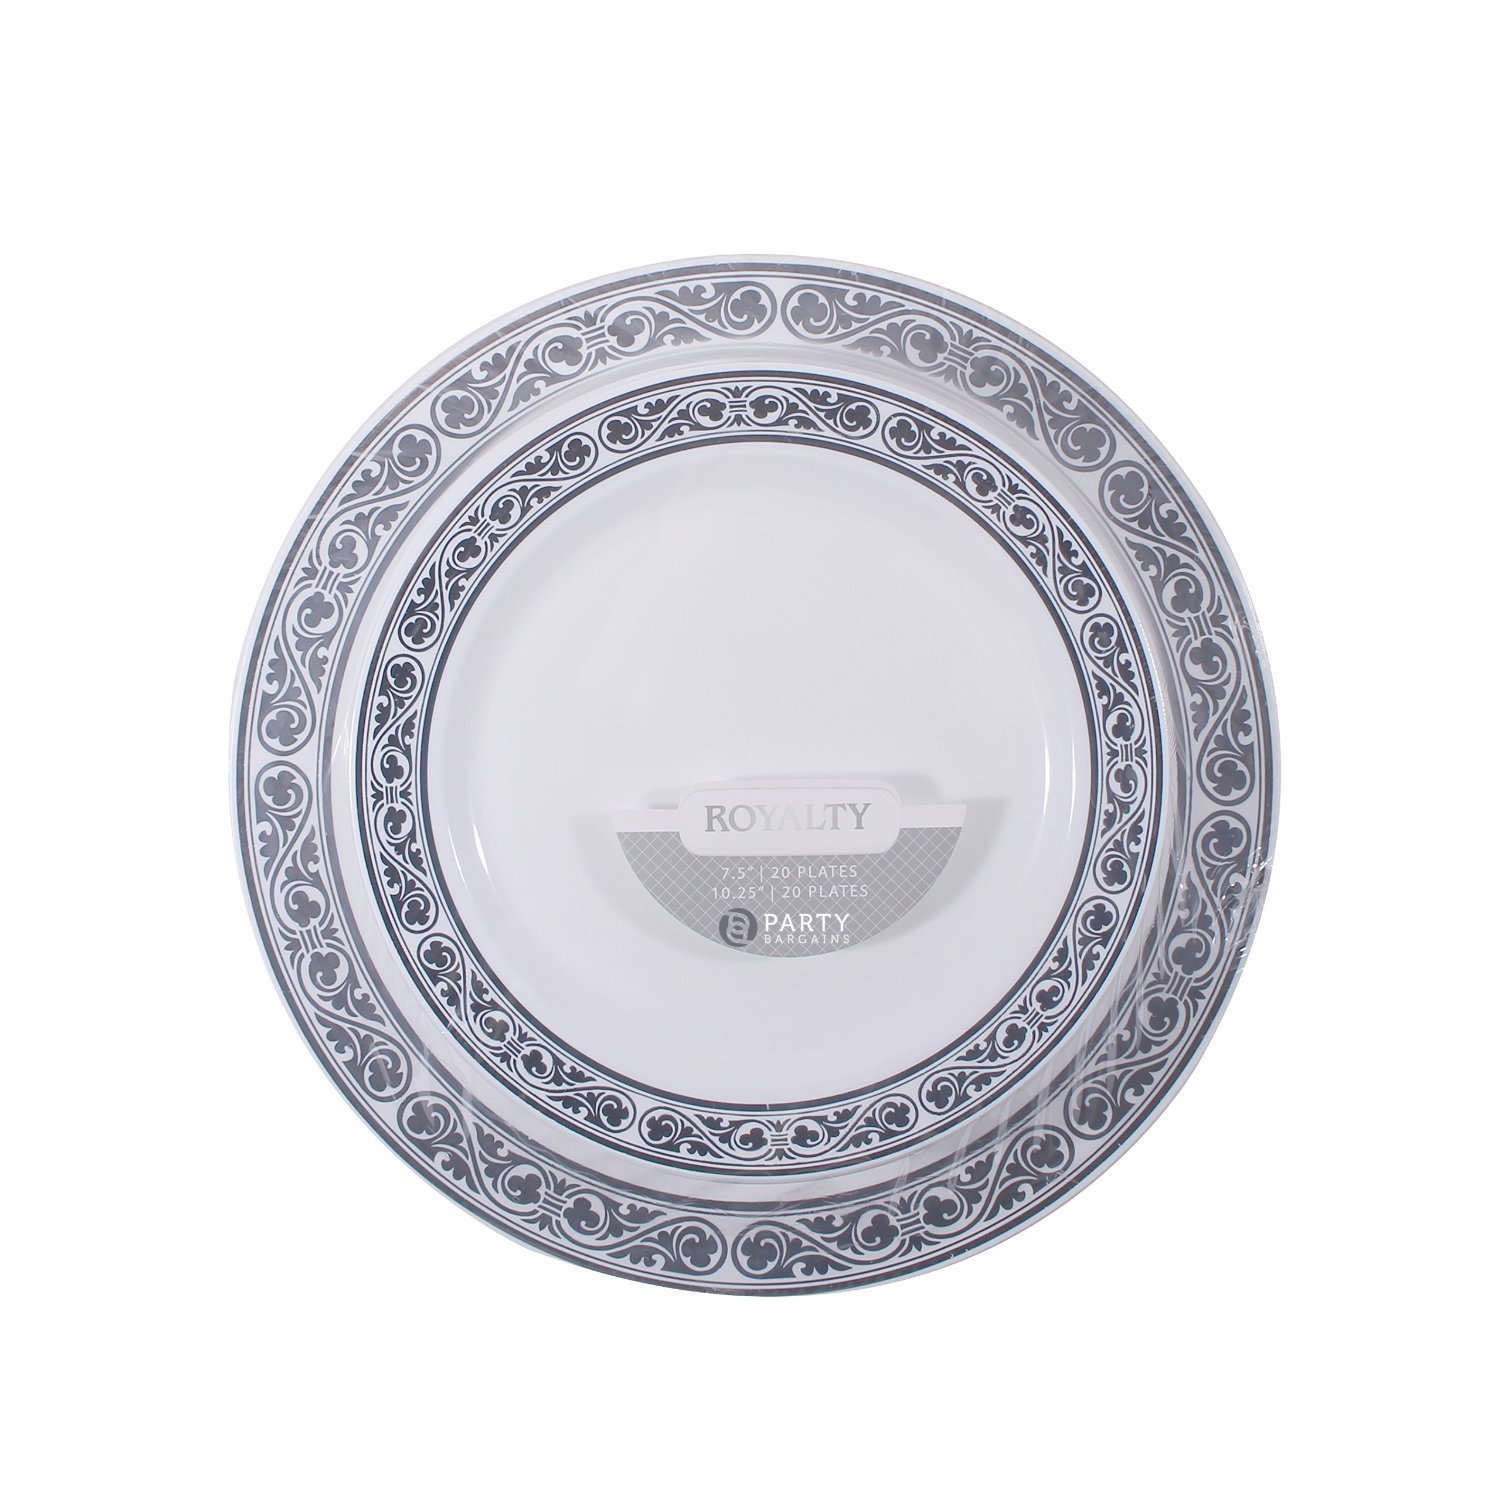 Disposable Plastic Plates Combo | Heavy Duty & Premium Quality White Dinnerware Set With Silver Rim | Ideal for Weddings, Baby & Bridal Showers & More | 7.5 Inch & 10.25 Inch 20 Pieces Each | 40 Count by Party Bargains